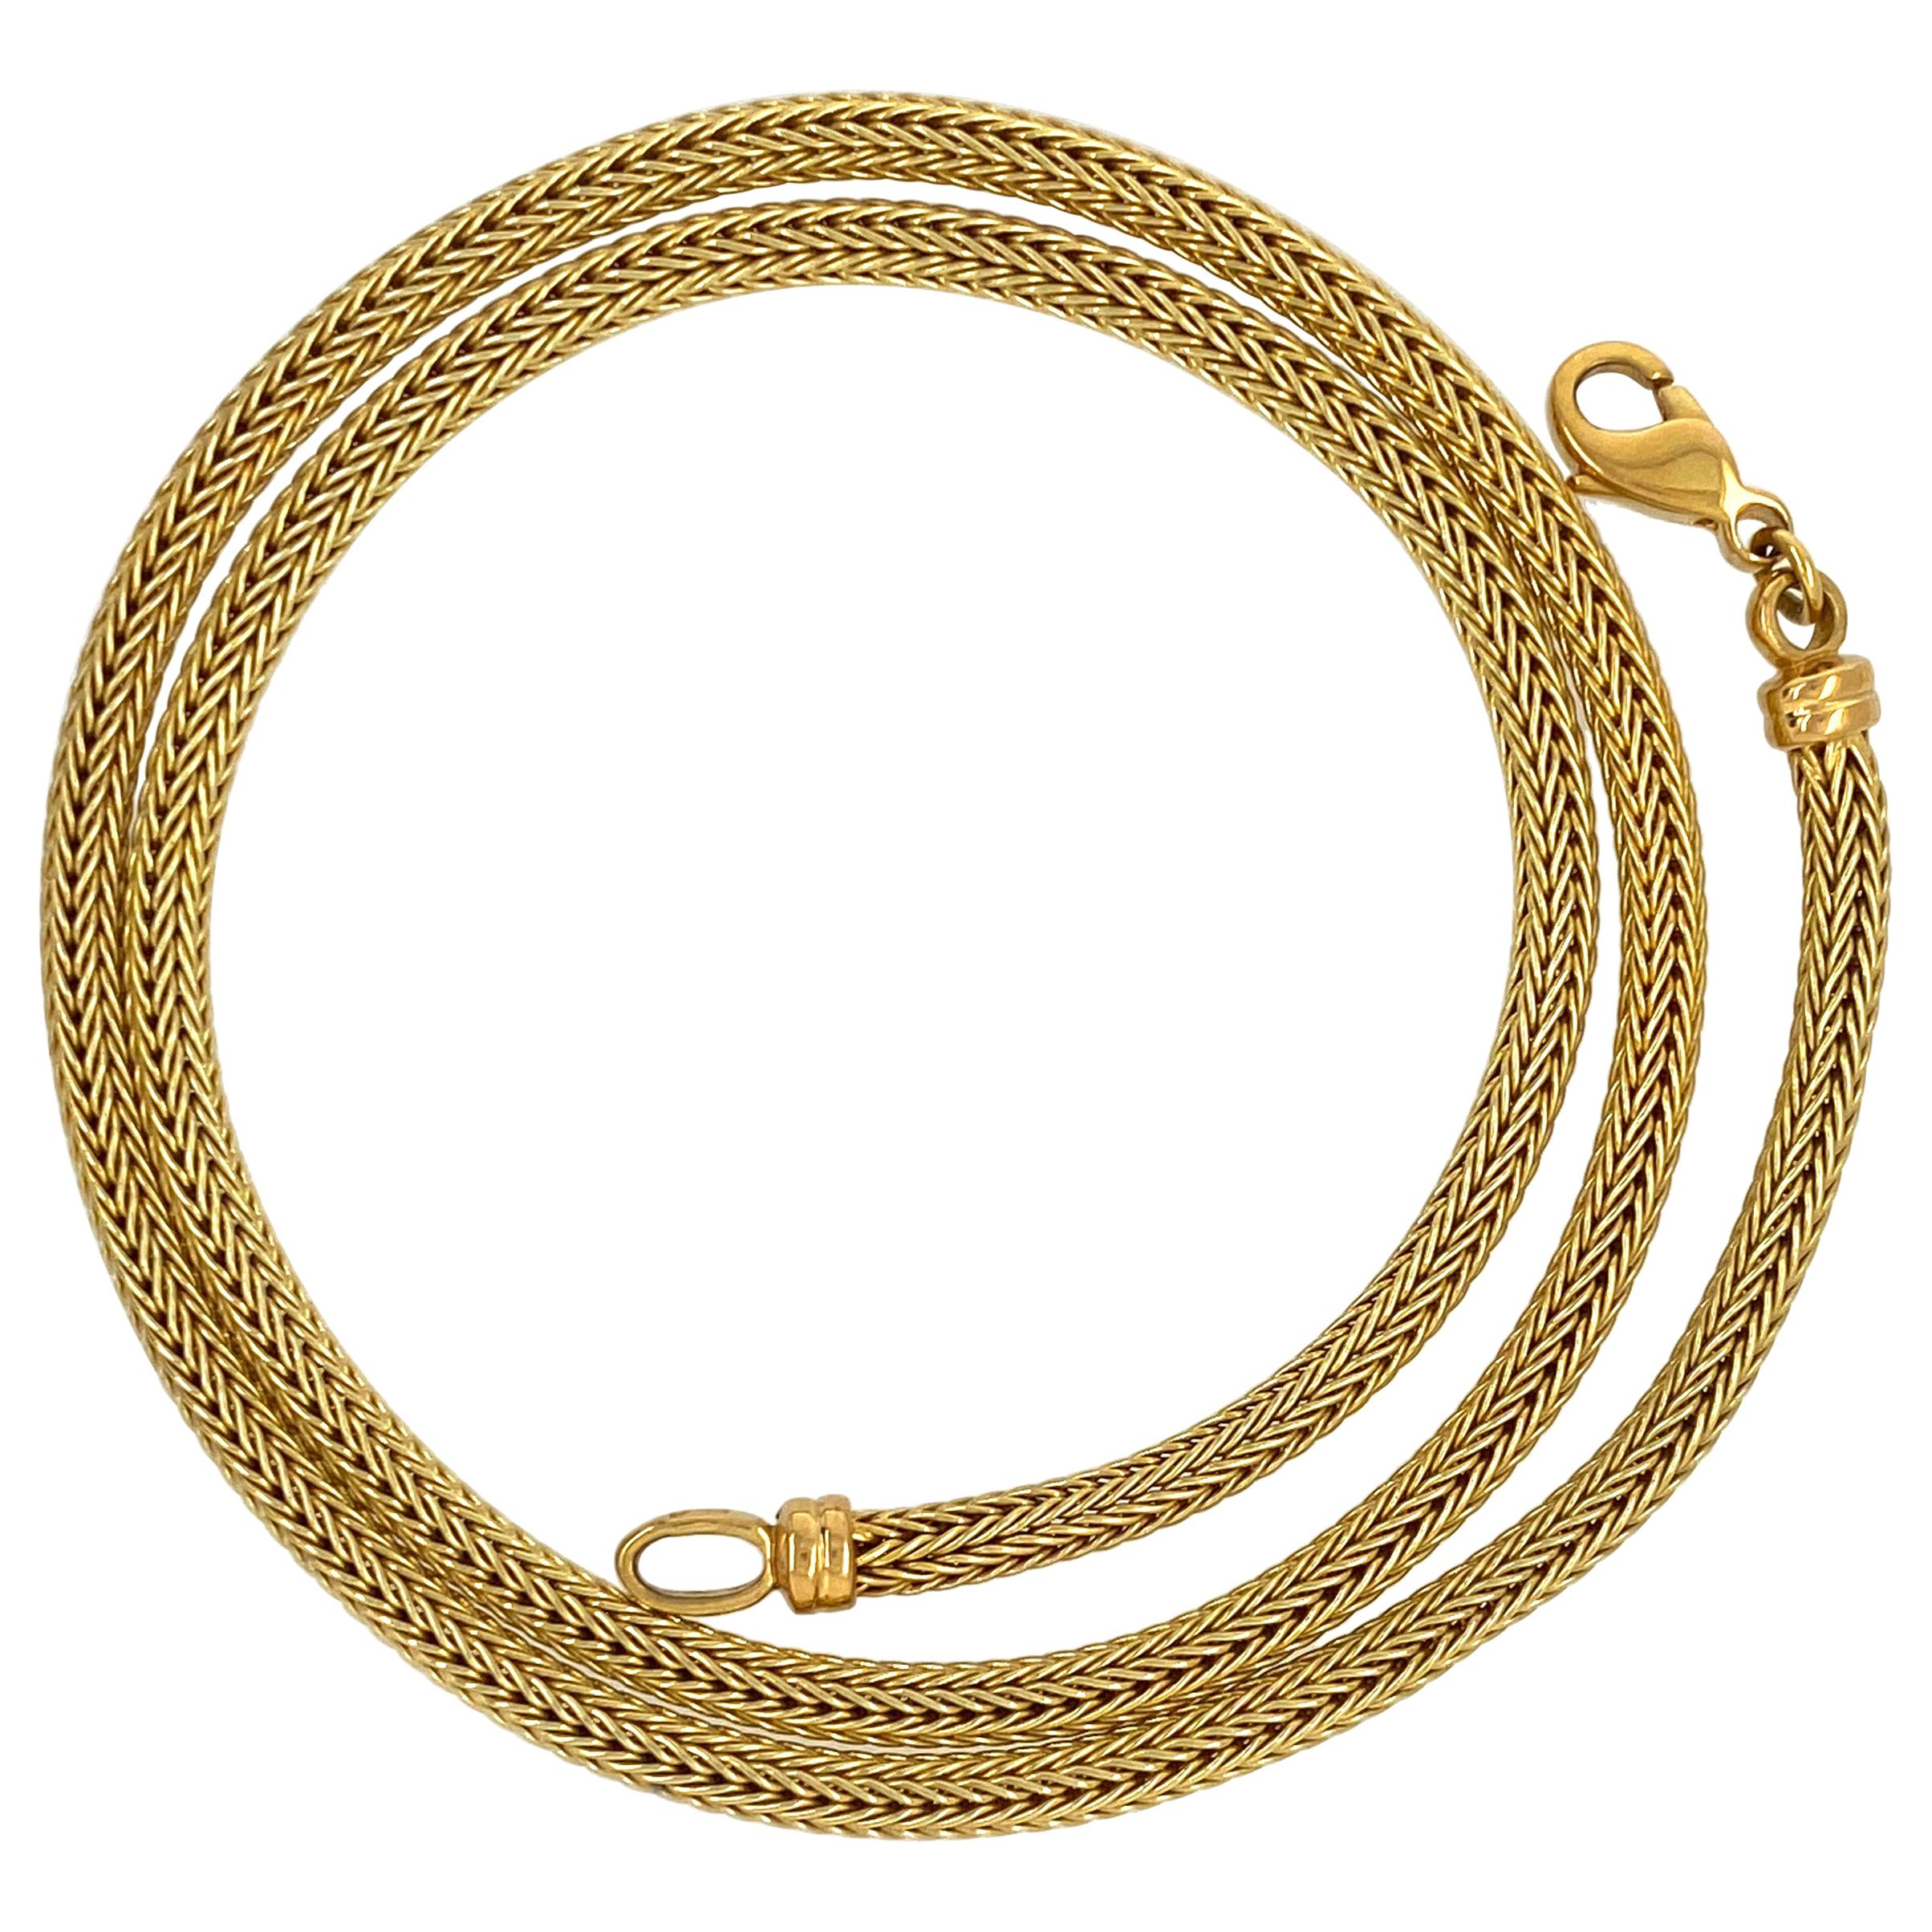 Thick Princess Length Round Woven Mesh Chain in Yellow Gold